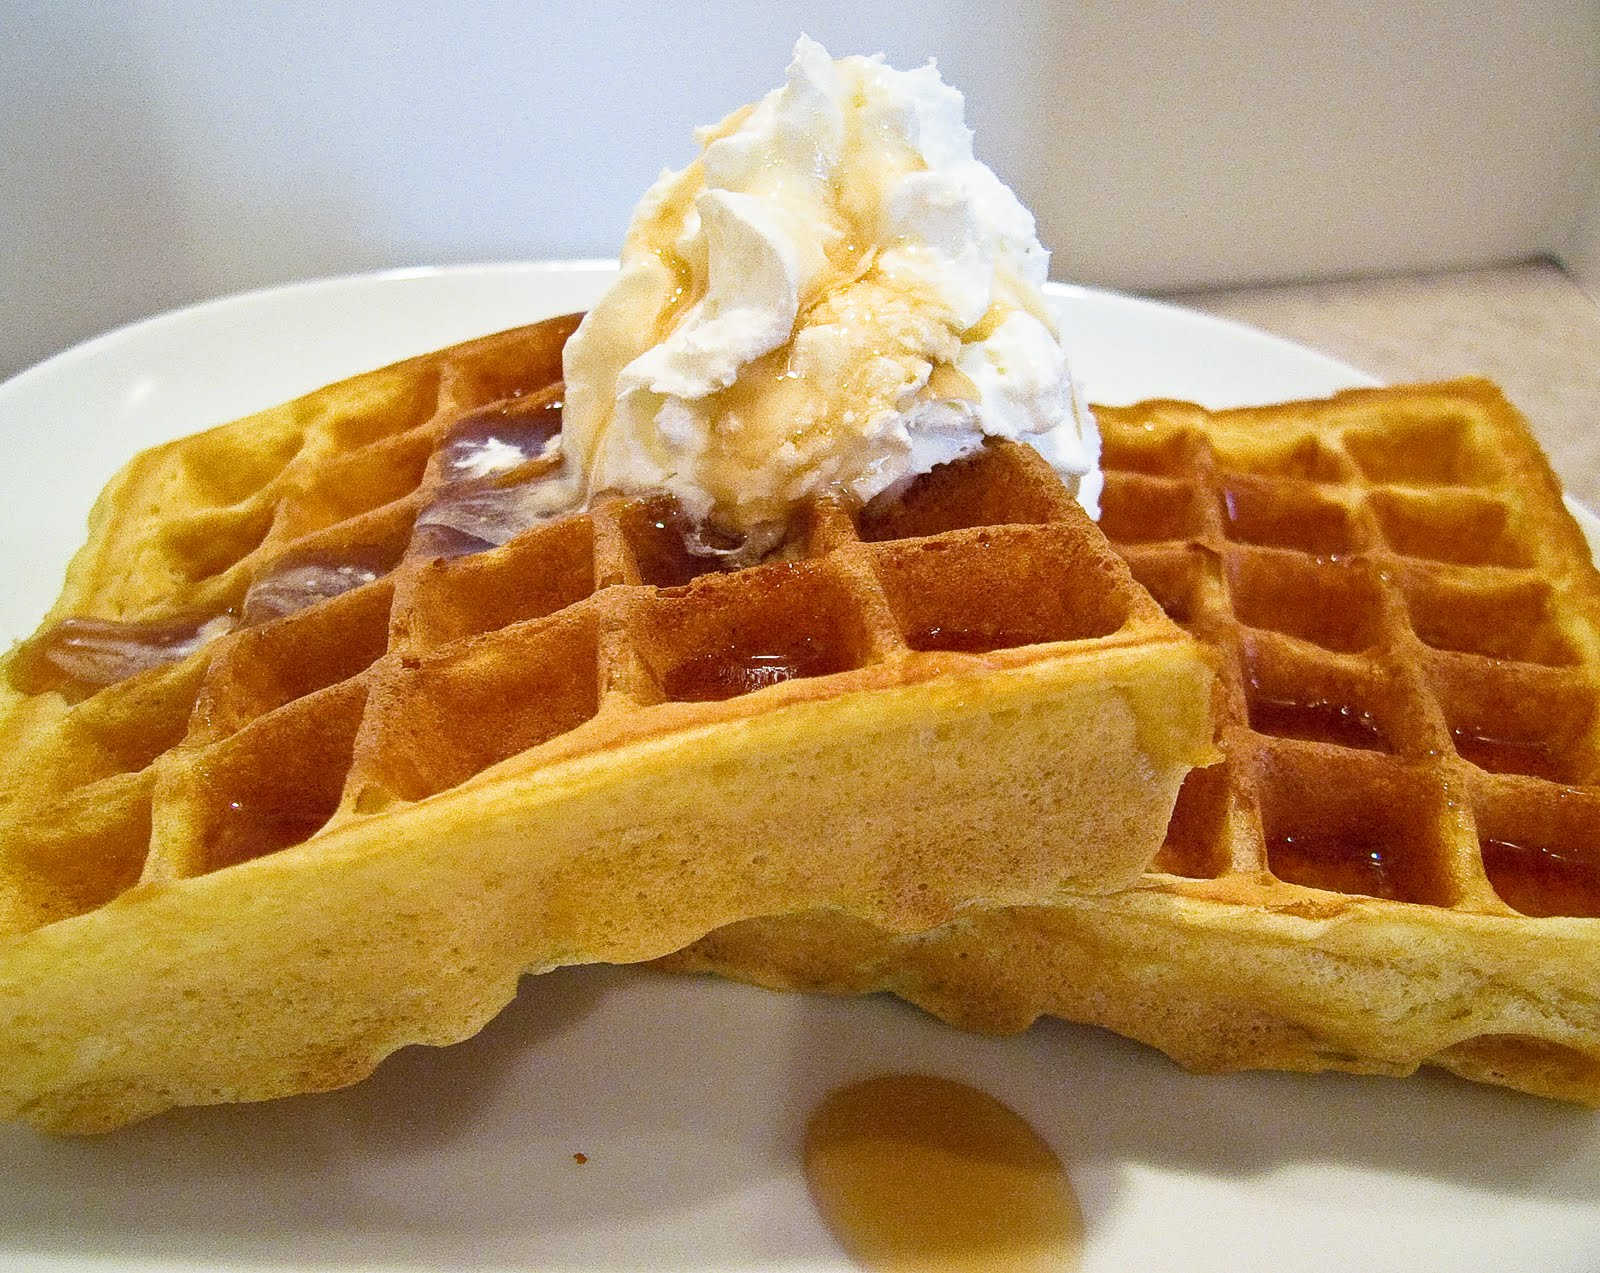 waffles best buttermilk waffles recipe buttermilk waffles recipe make ...